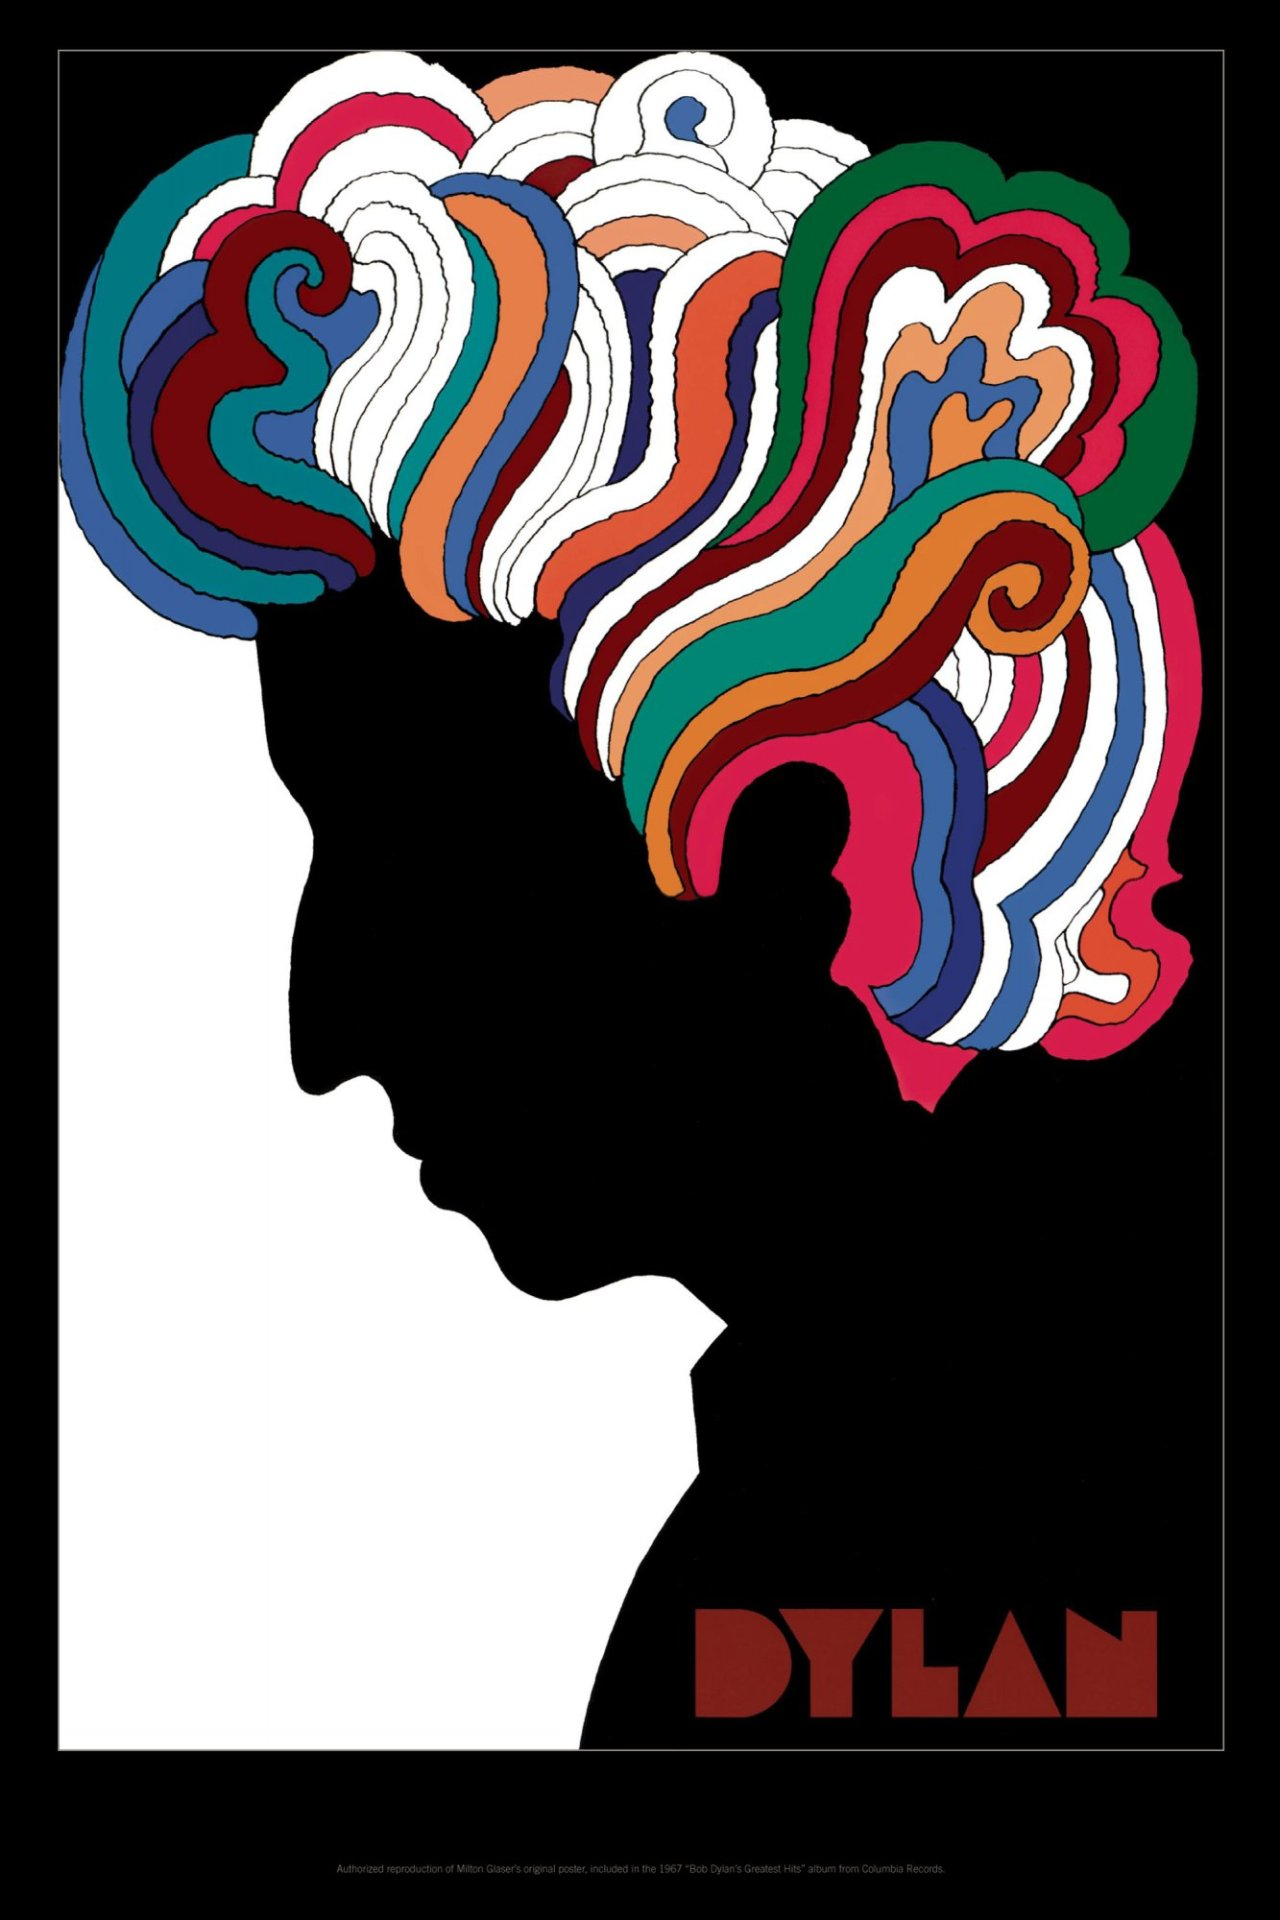 Darby Stephens   Dylan   1966   I love gig posters and album covers, and this poster of Bob Dylan by Milton Glaser is one that has always stood out to me. I find it to be an incredible piece of art.   The use of color, balance, flow, and contrast.